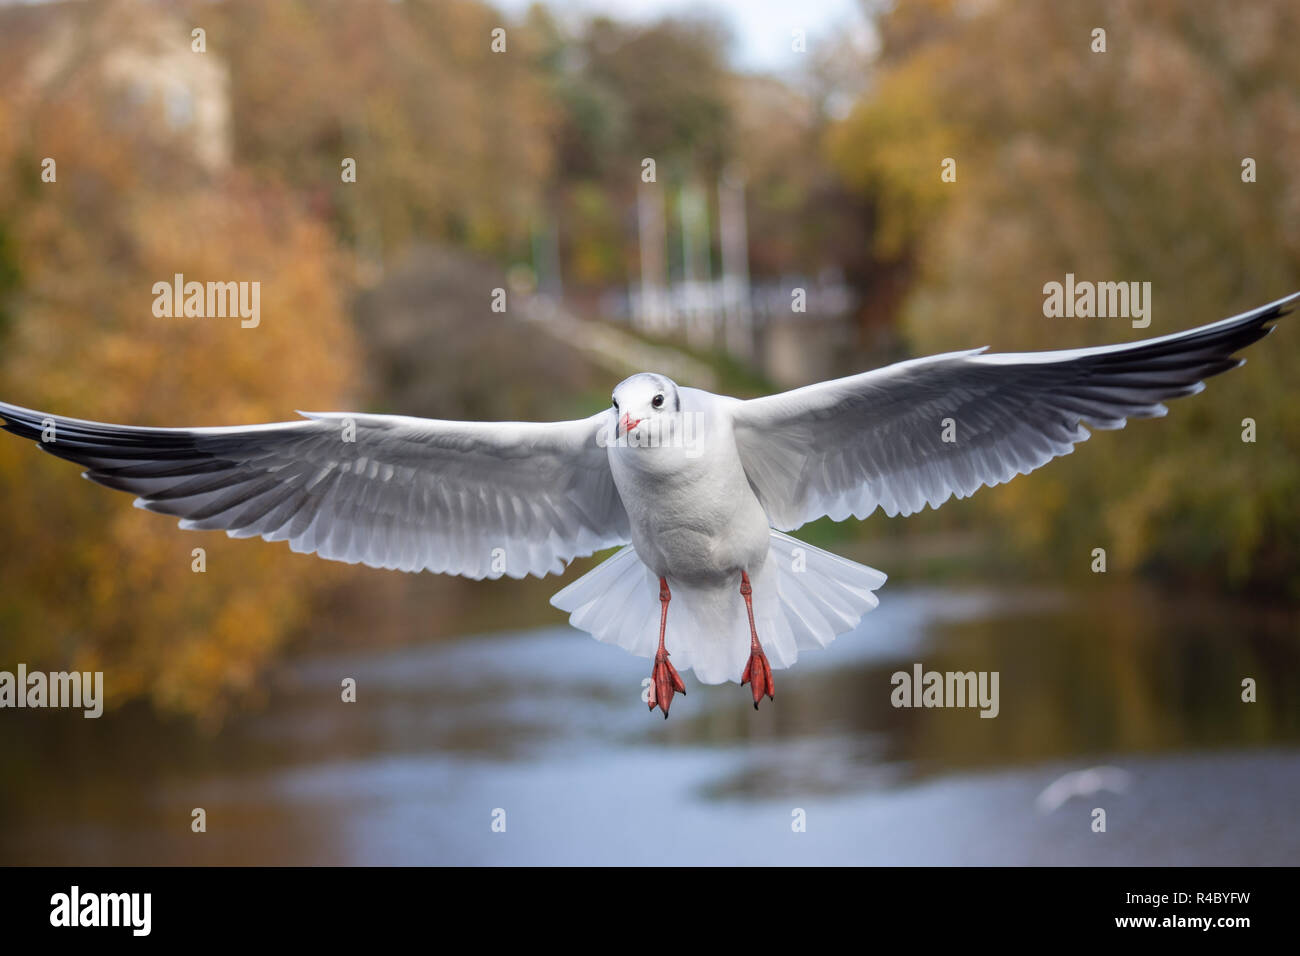 Close up of a black headed gull (Chroicocephalus ridibundus) in adult winter plumage flying wings extended - Stock Image